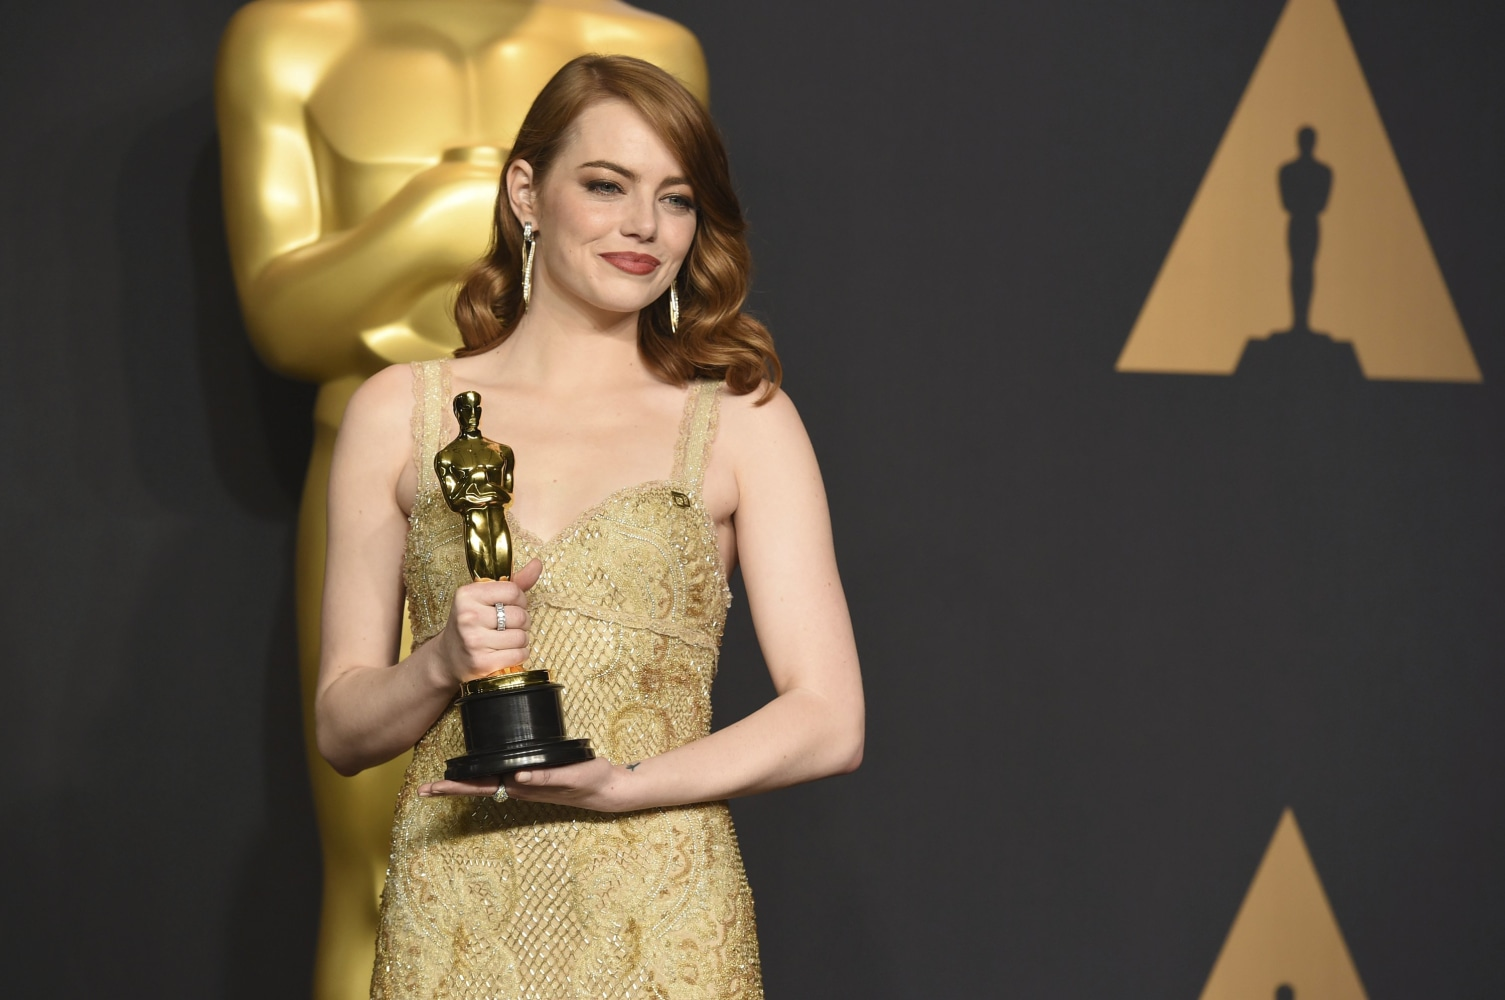 Hollywood's highest-paid actress has been revealed